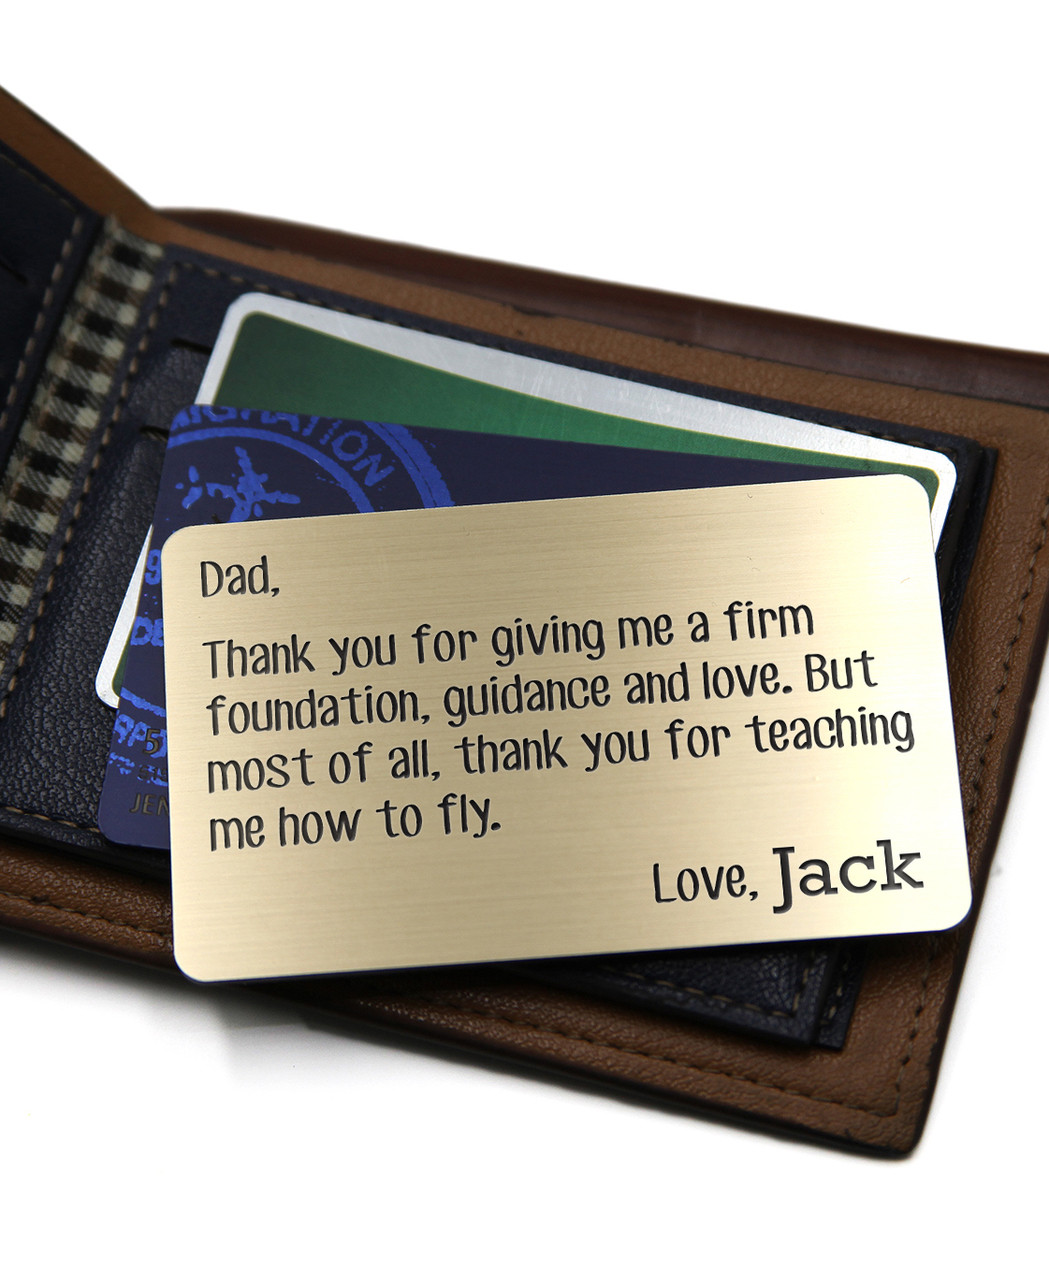 Grpn UK - Personalized Wallet Card - Dad Foundation